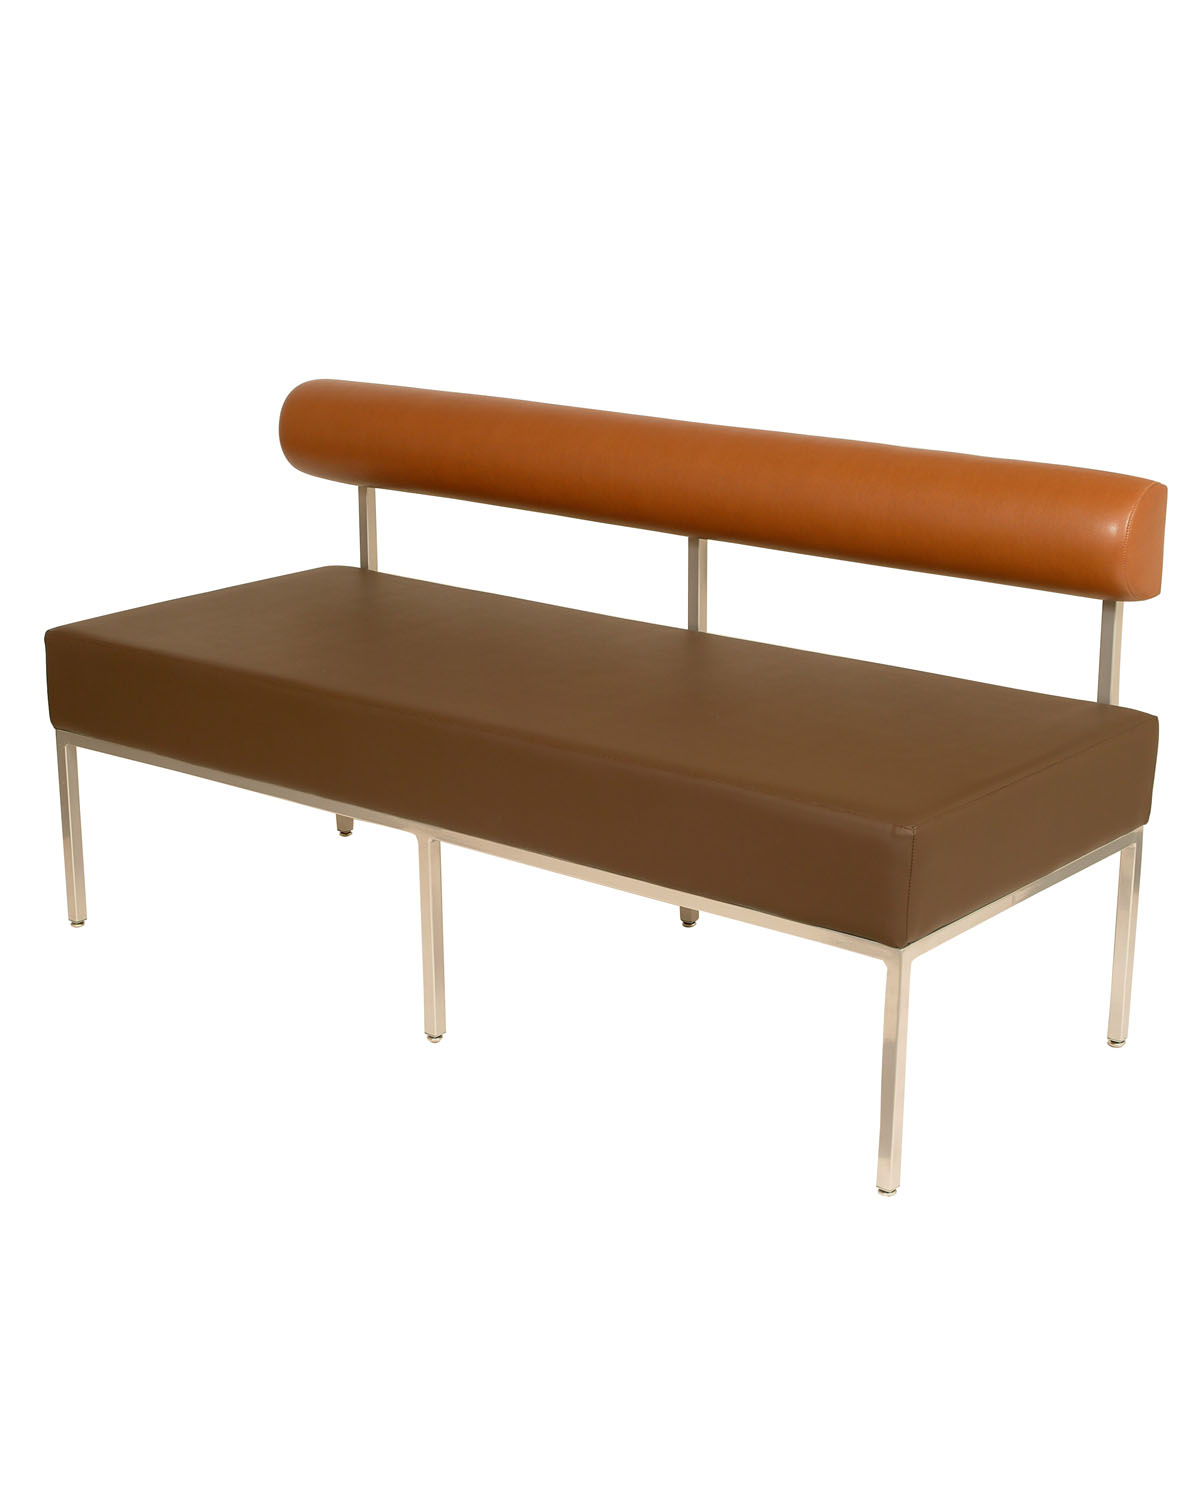 Custom Sundance Bench Isa International